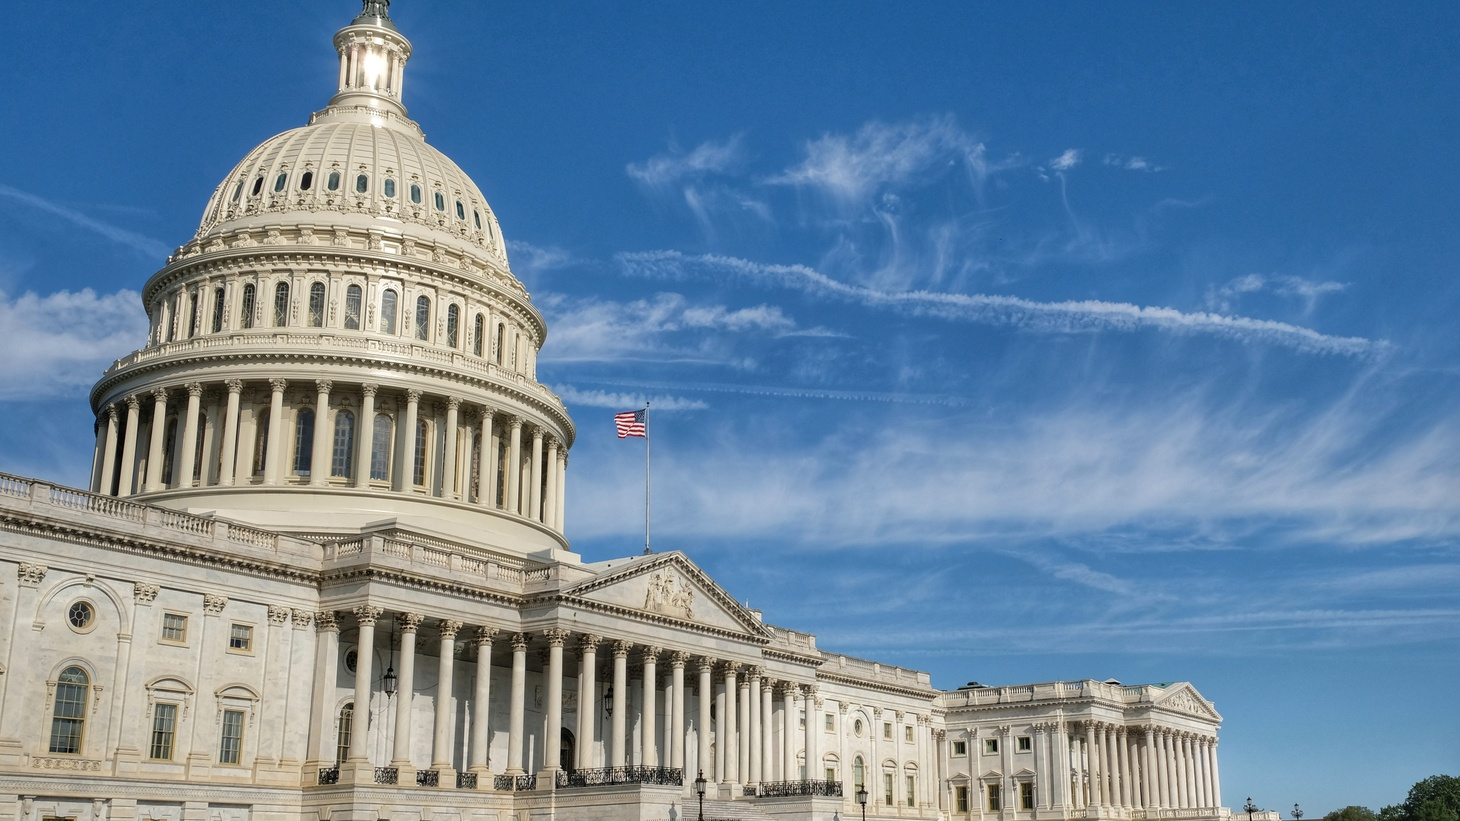 The U.S. Capitol features classical architecture.